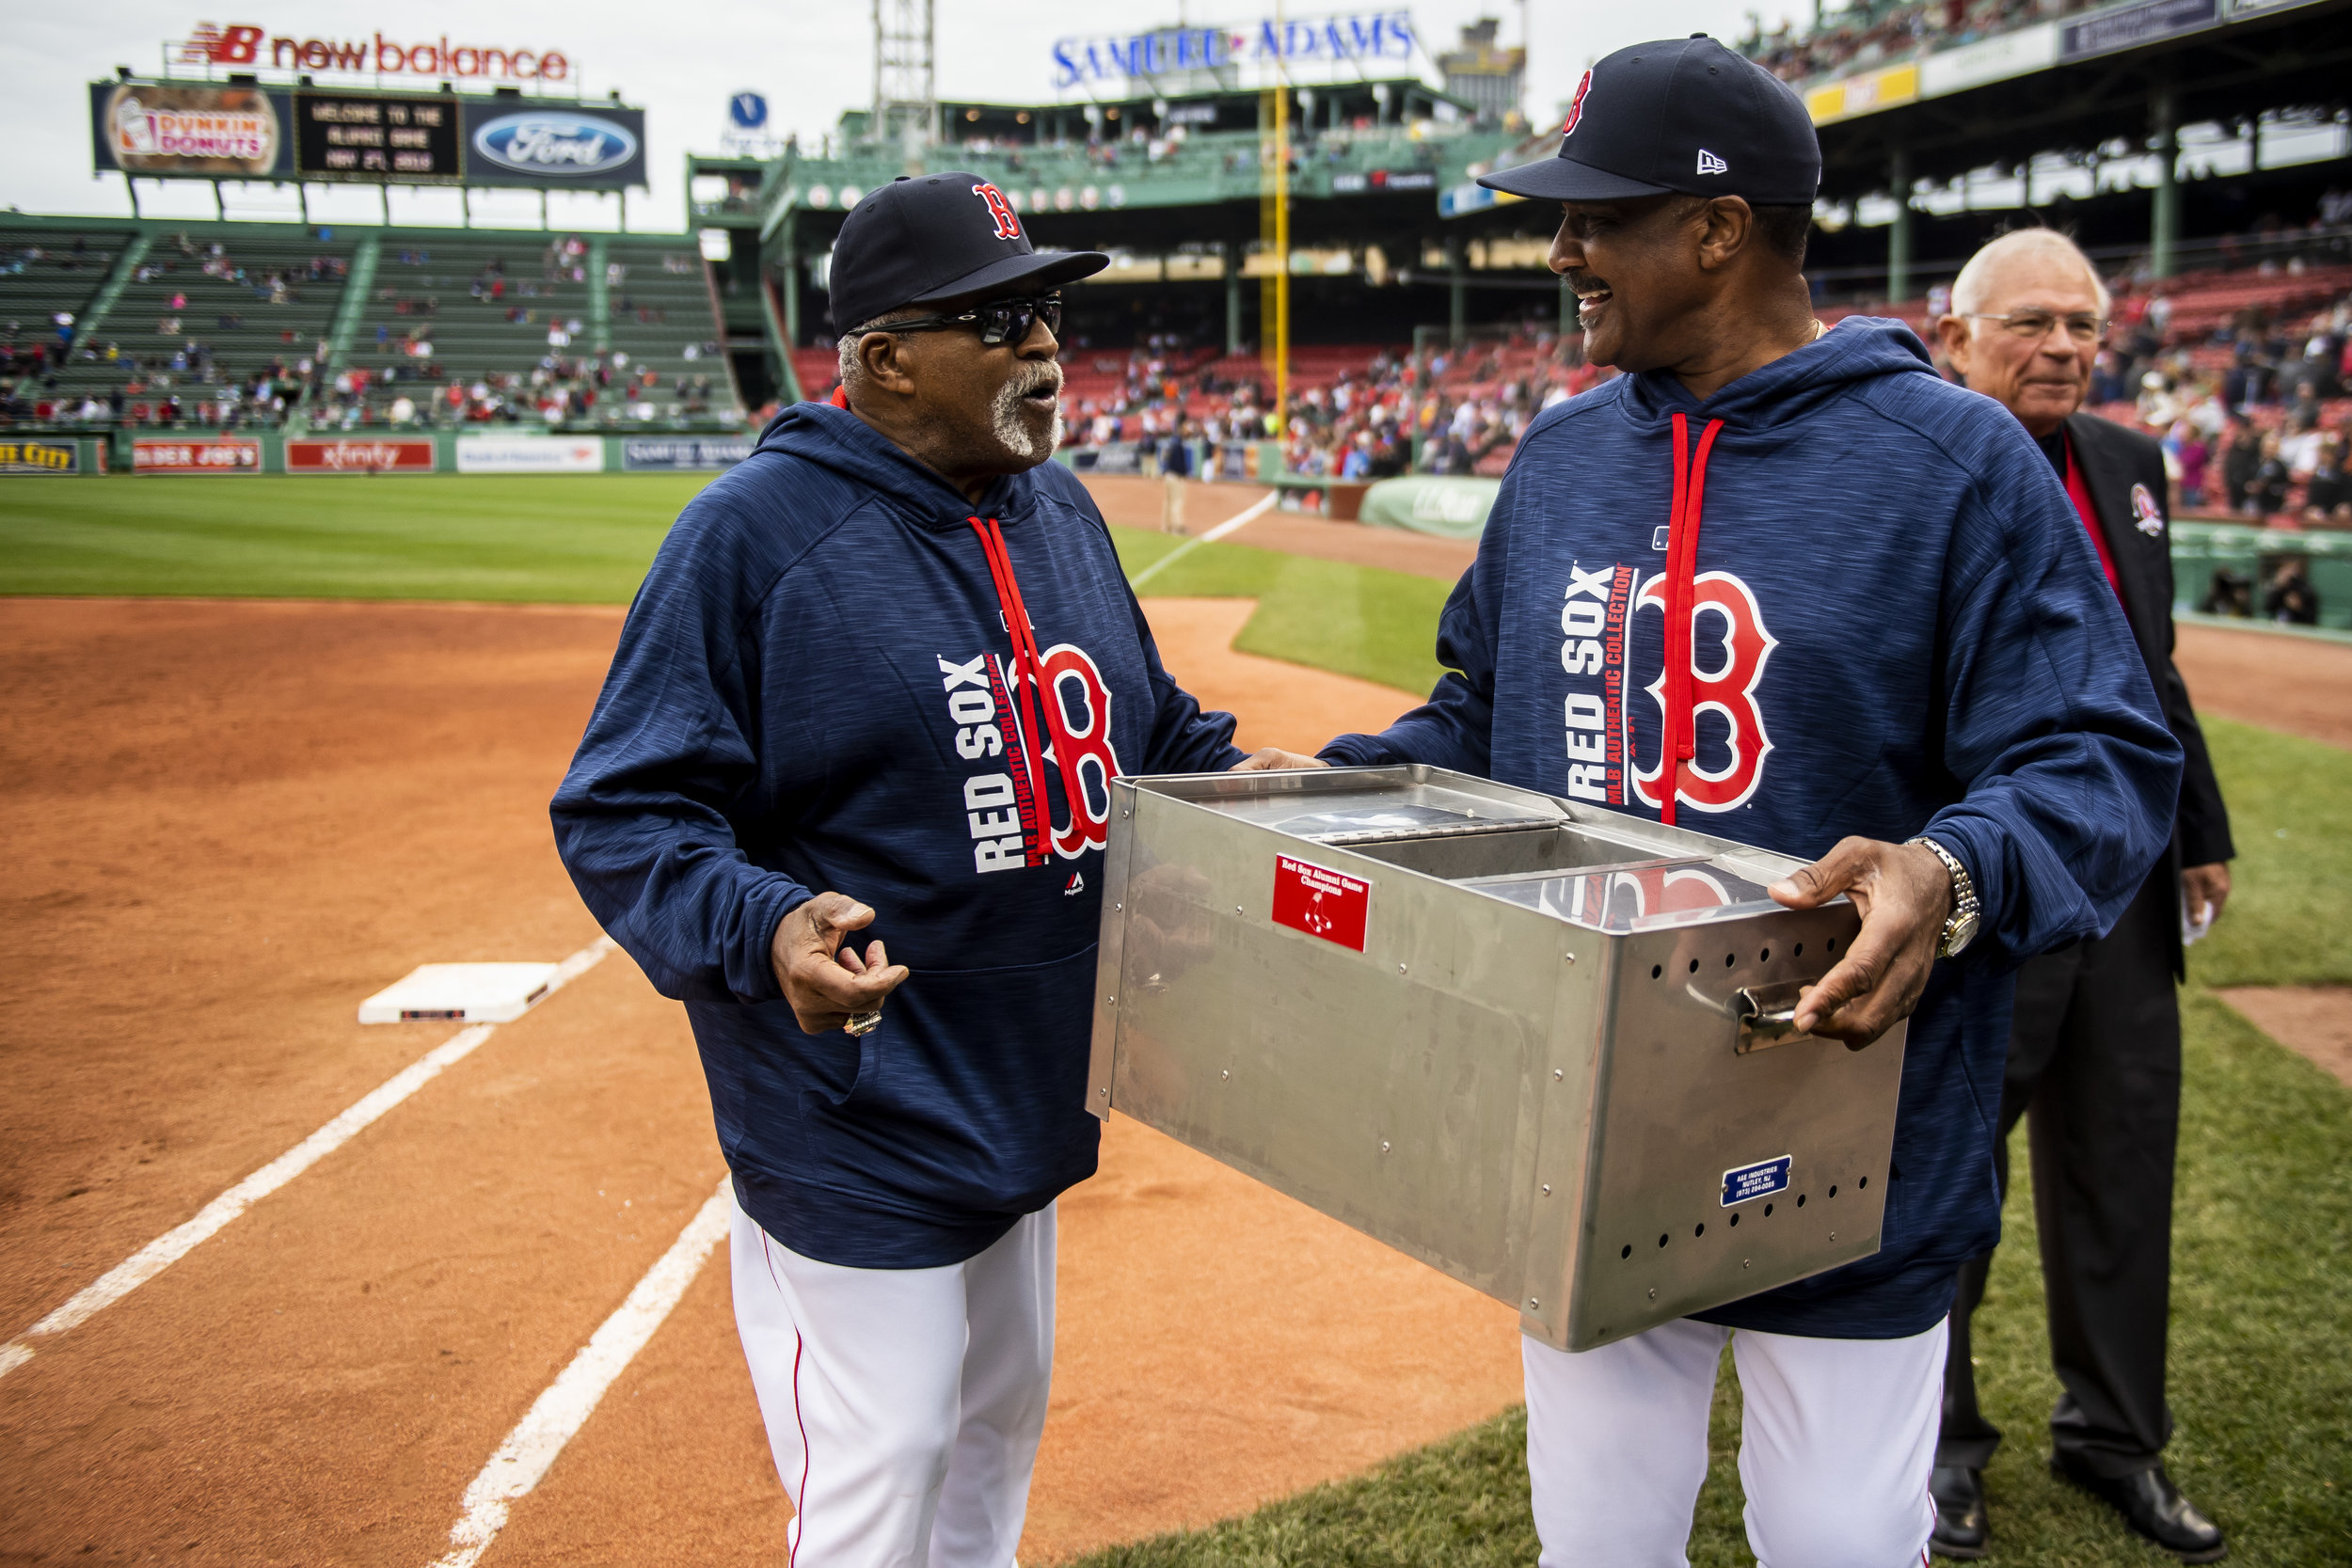 May 27, 2018, Boston, MA: Jim Rice presents Luis Tiant with the Alumni Game trophy after the game at Fenway Park in Boston, Massachusetts on Sunday, May 27, 2018. (Photo by Matthew Thomas/Boston Red Sox)